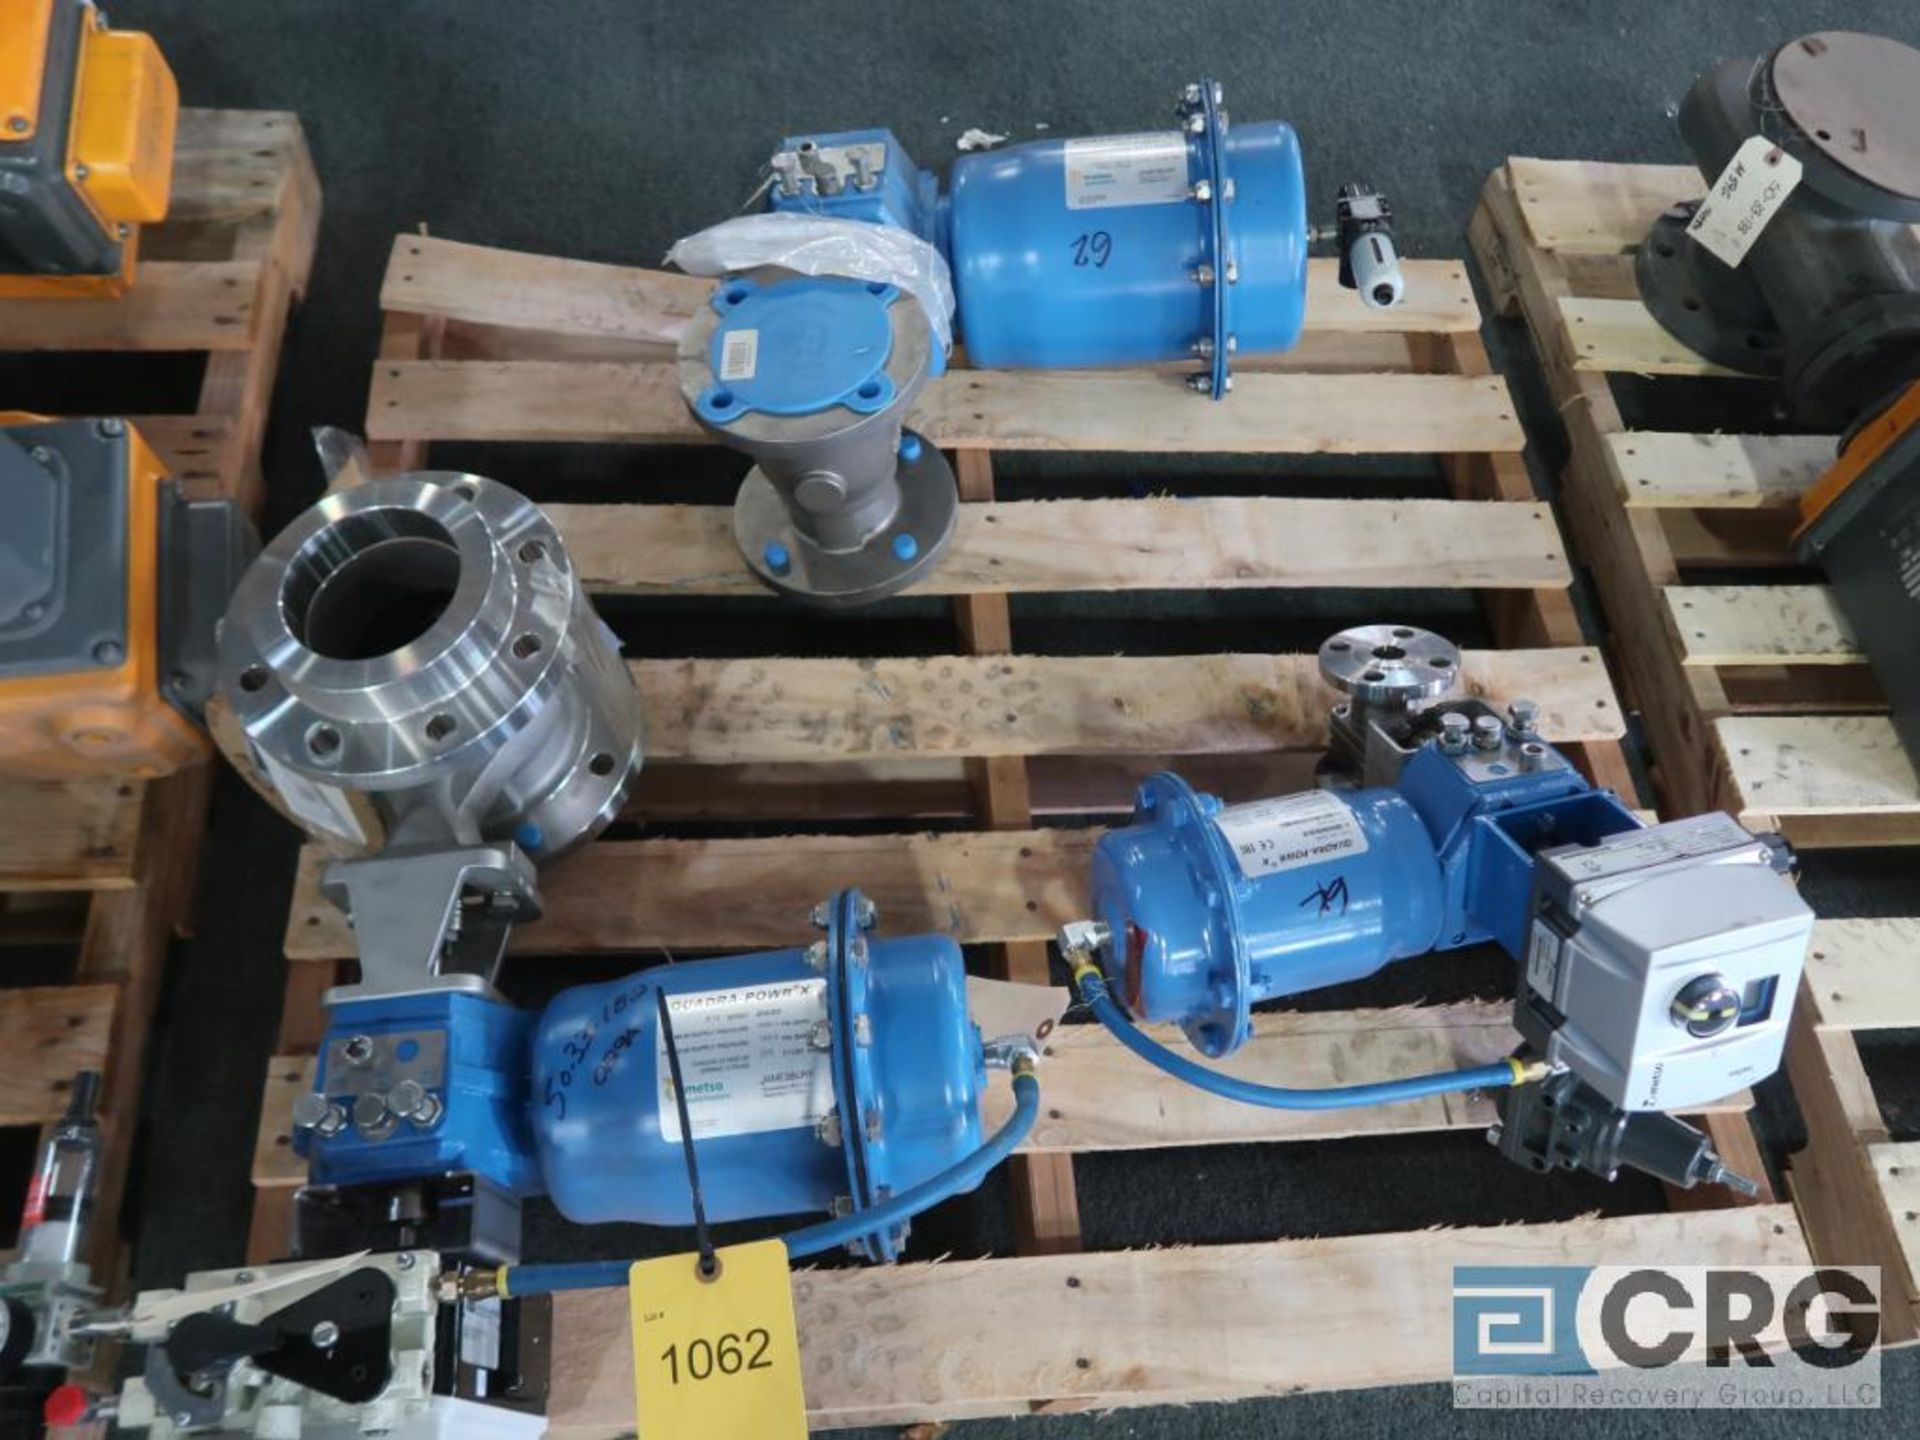 Lot of (3) Metso stainless actuator valves, (1) 3 in., (1) 4 in., and (1) 1 in. (Finish Building)